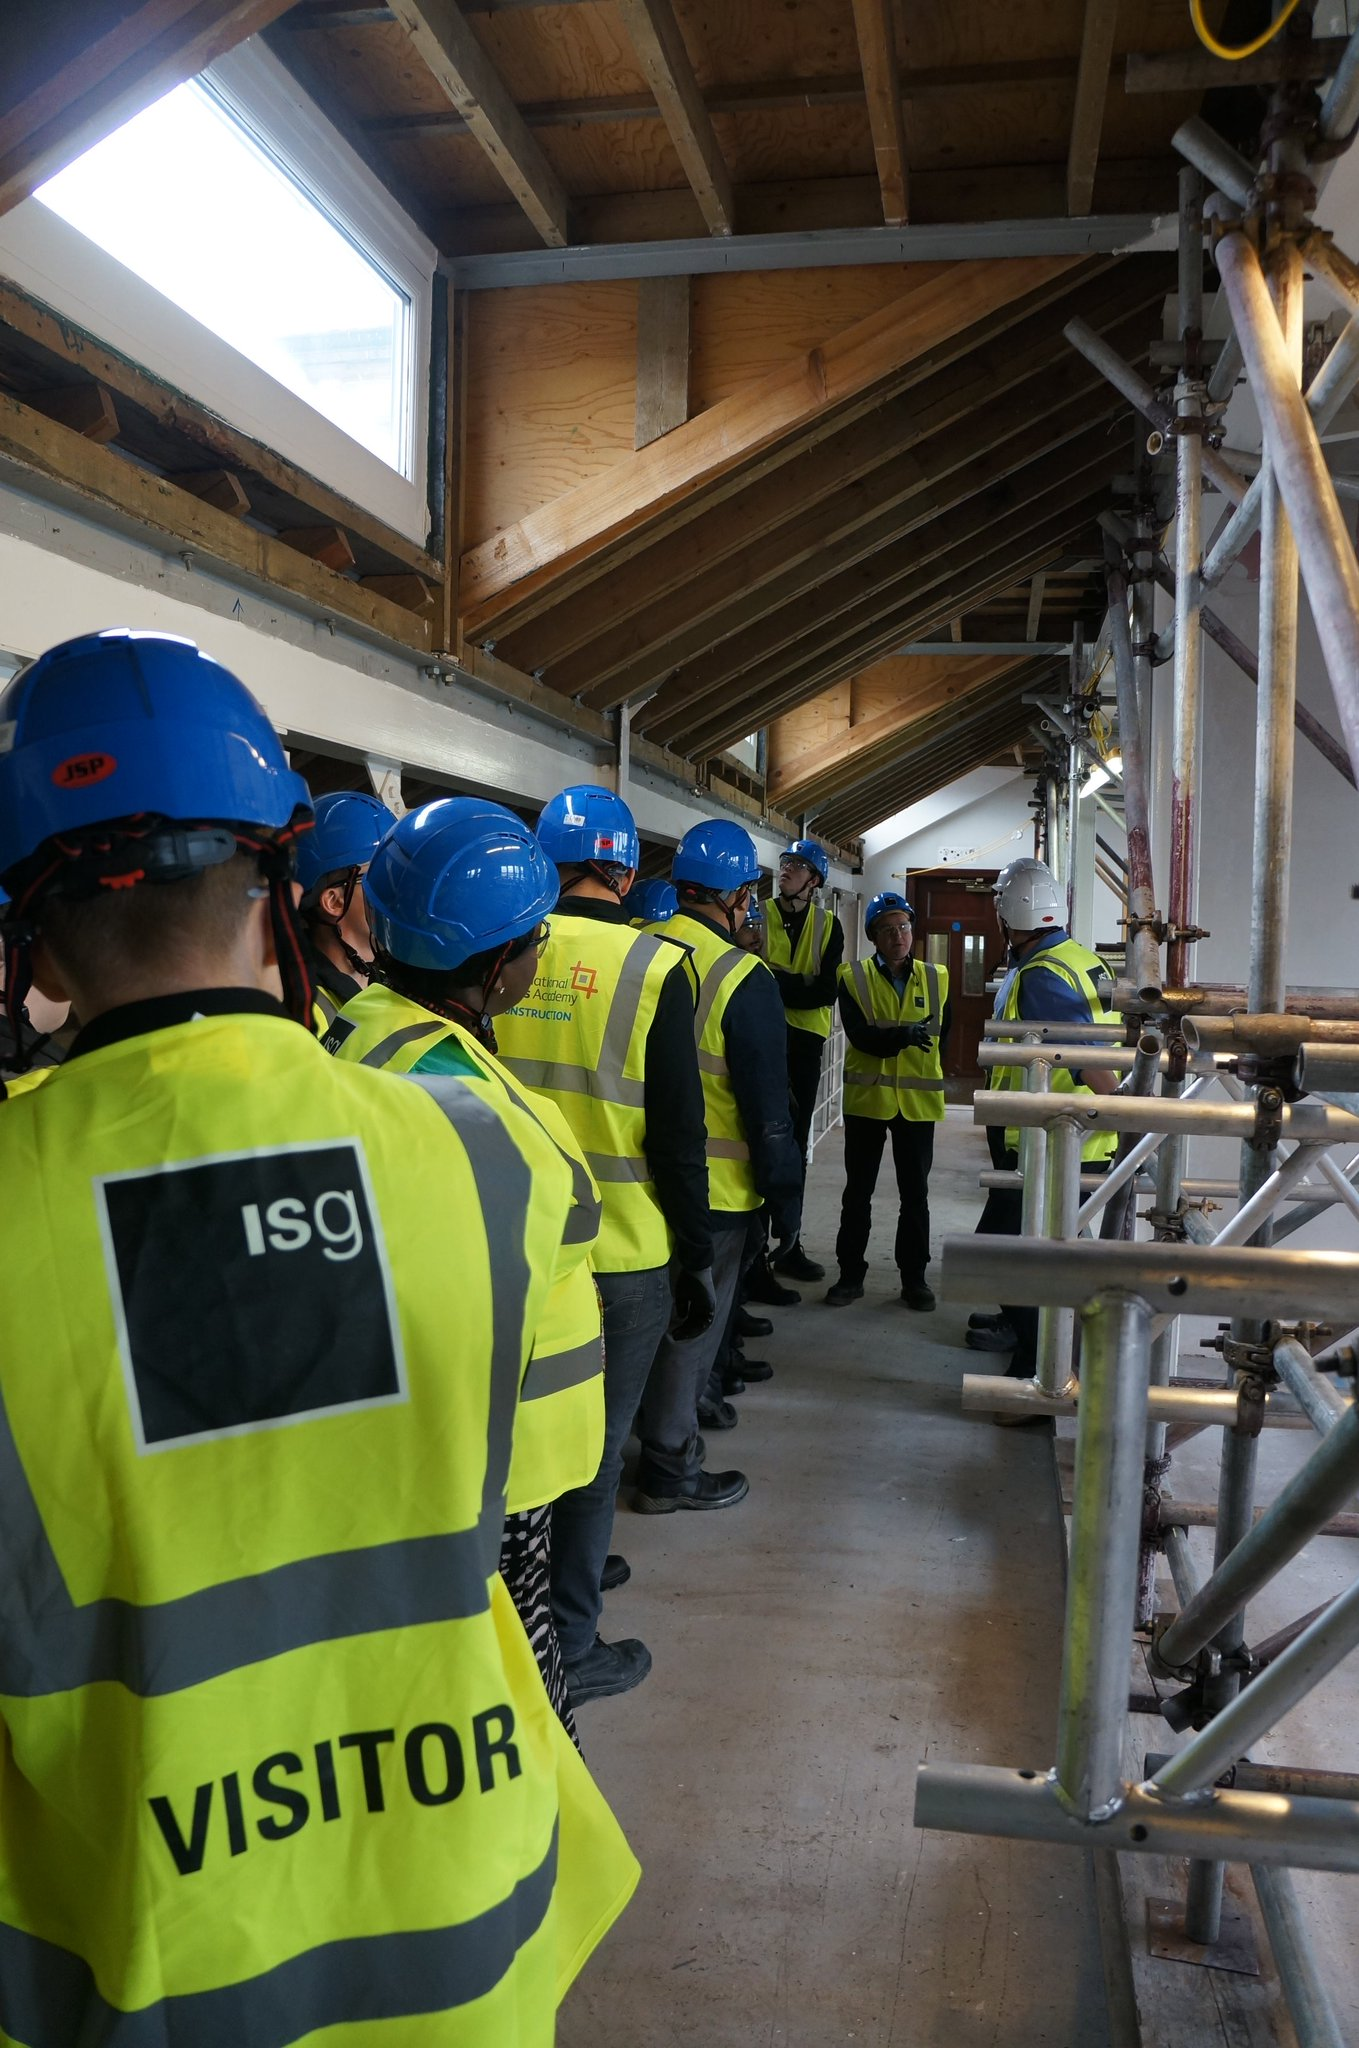 @ISGplc's project #WOWEX is inspiring young people into Construction Management #TEWeek16 @CITB_UK https://t.co/XKvHMvNFm0